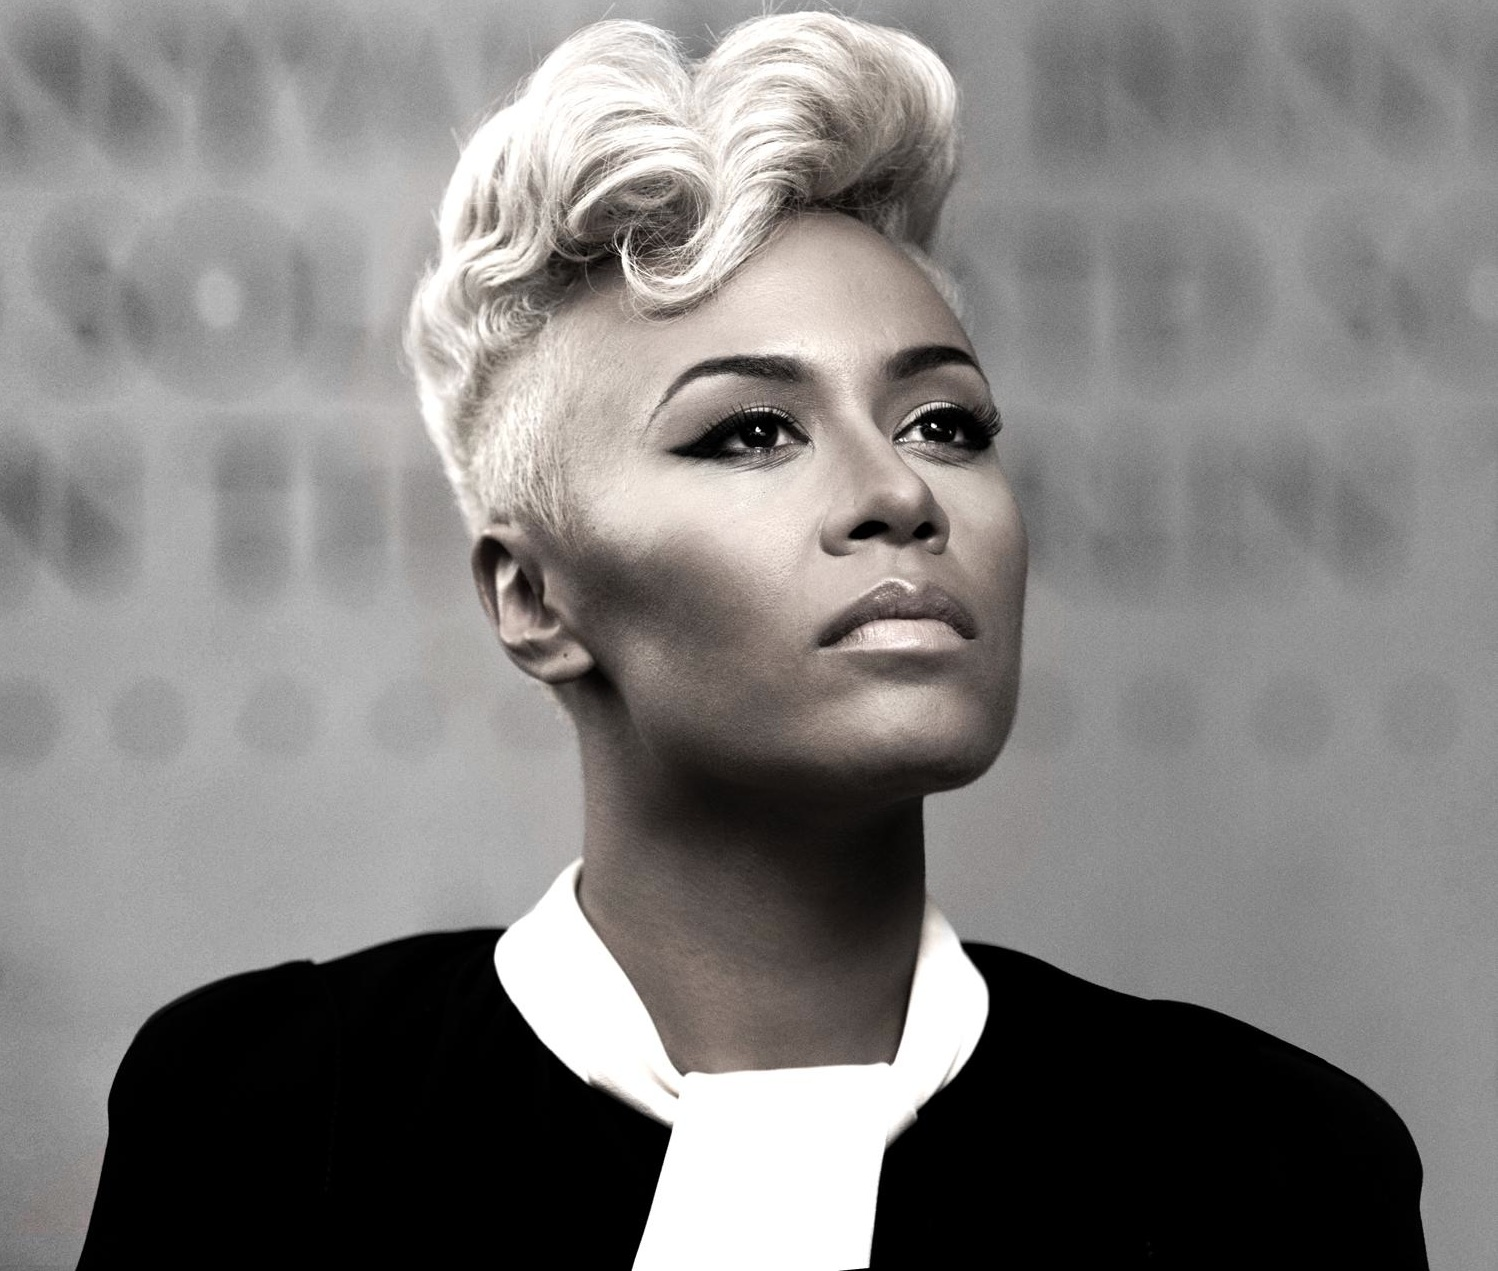 Emeli SandÈ earned a  million dollar salary - leaving the net worth at 8 million in 2018